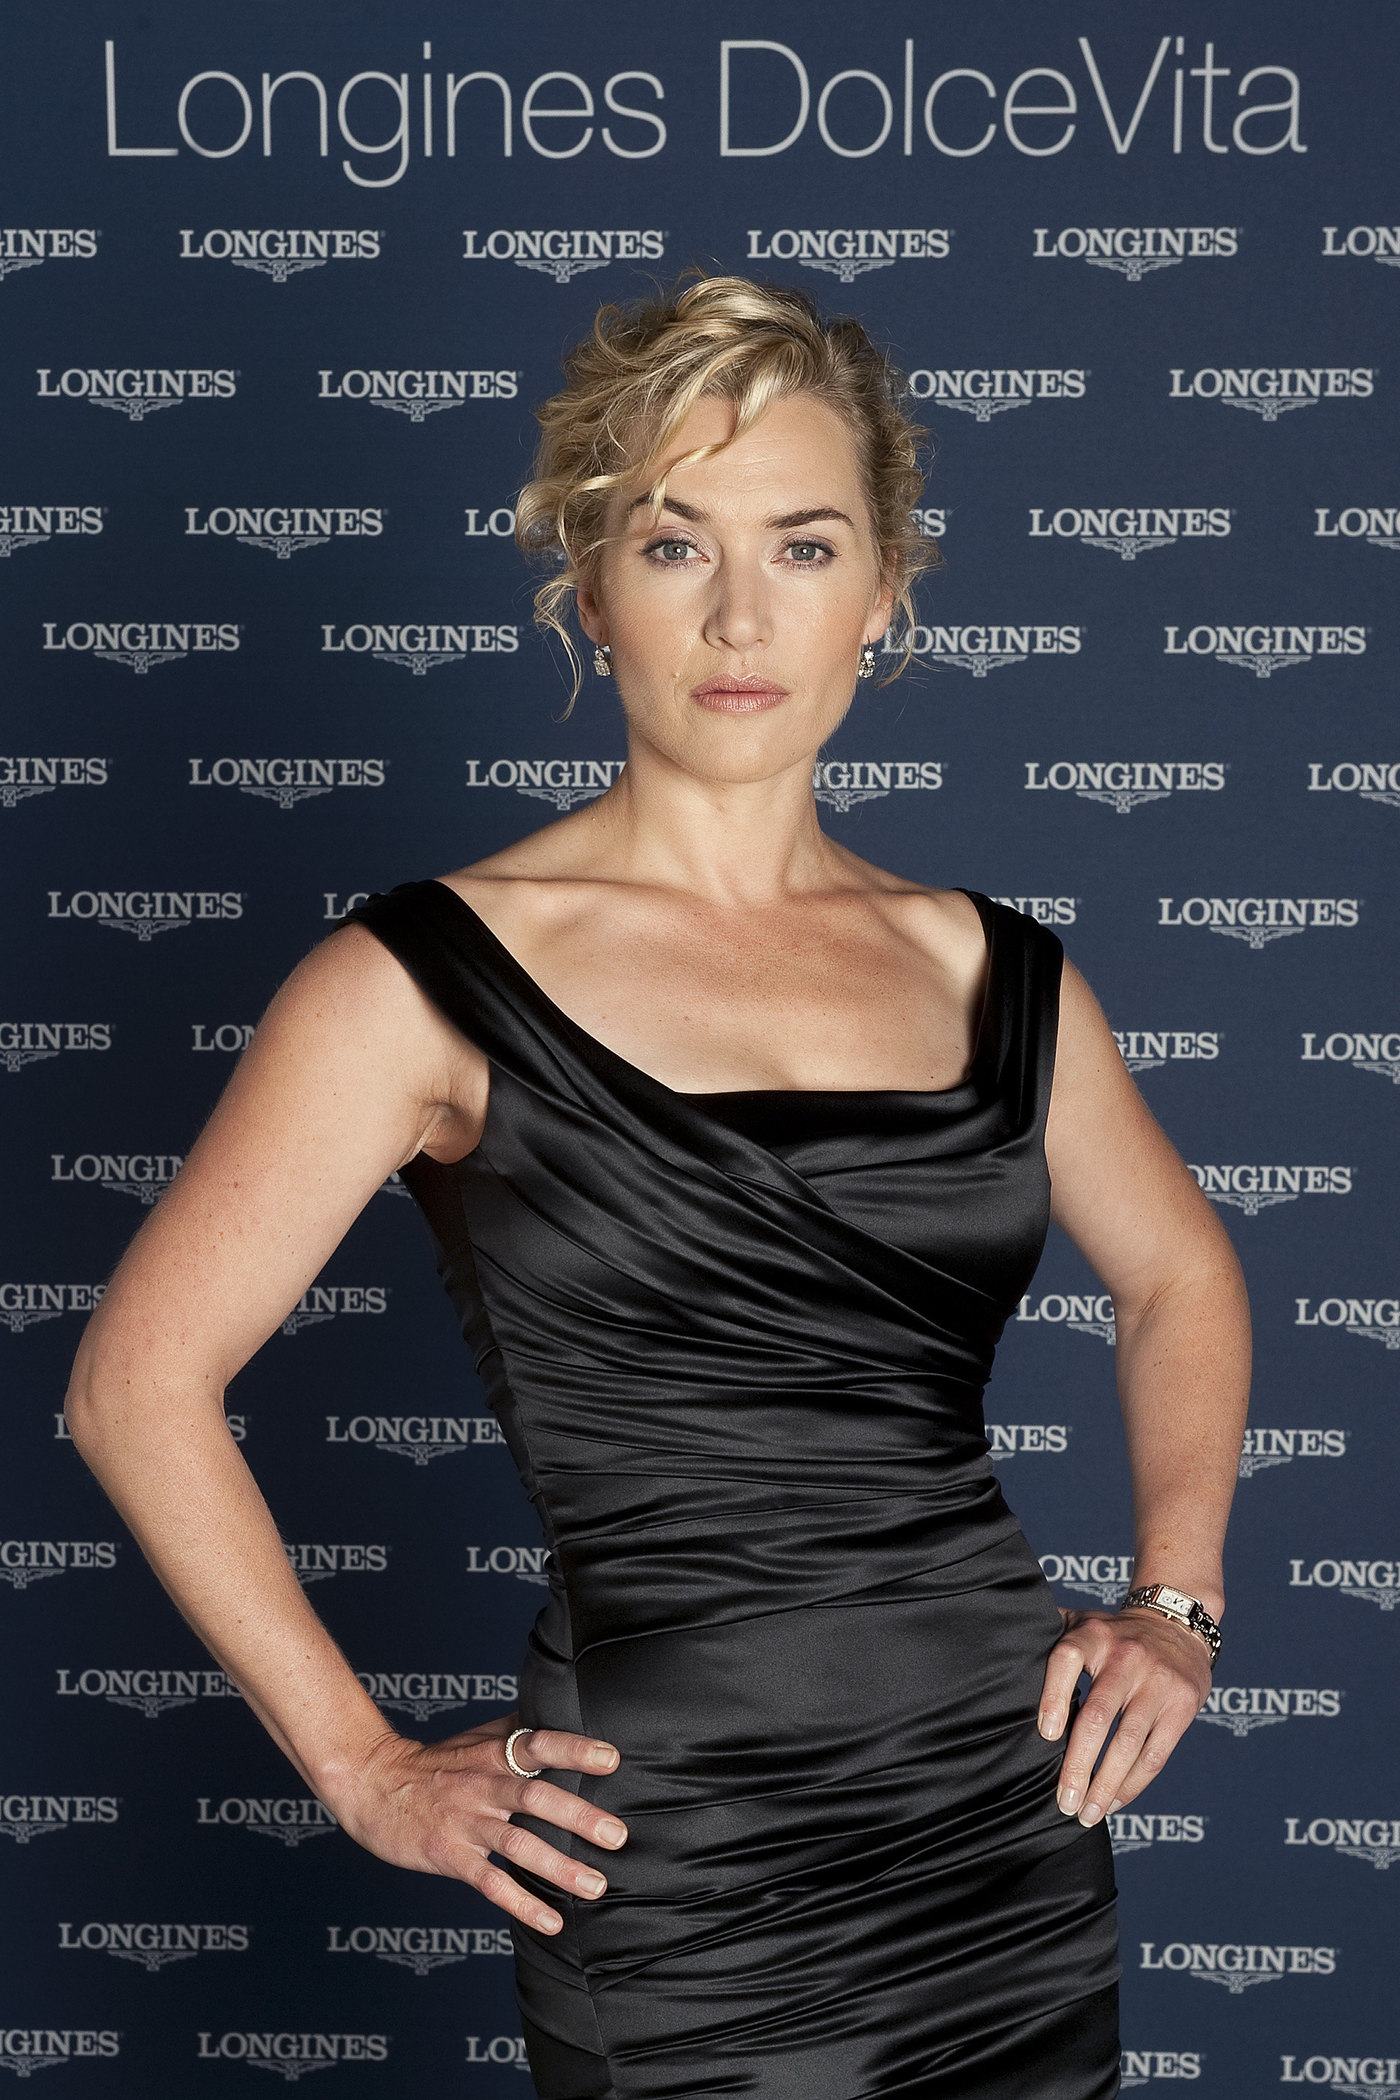 Longines Corporate Event: Kate Winslet, Aishwarya Rai Bachchan and Chi Ling Lin reveal the new additions to the Longines DolceVita collection 6